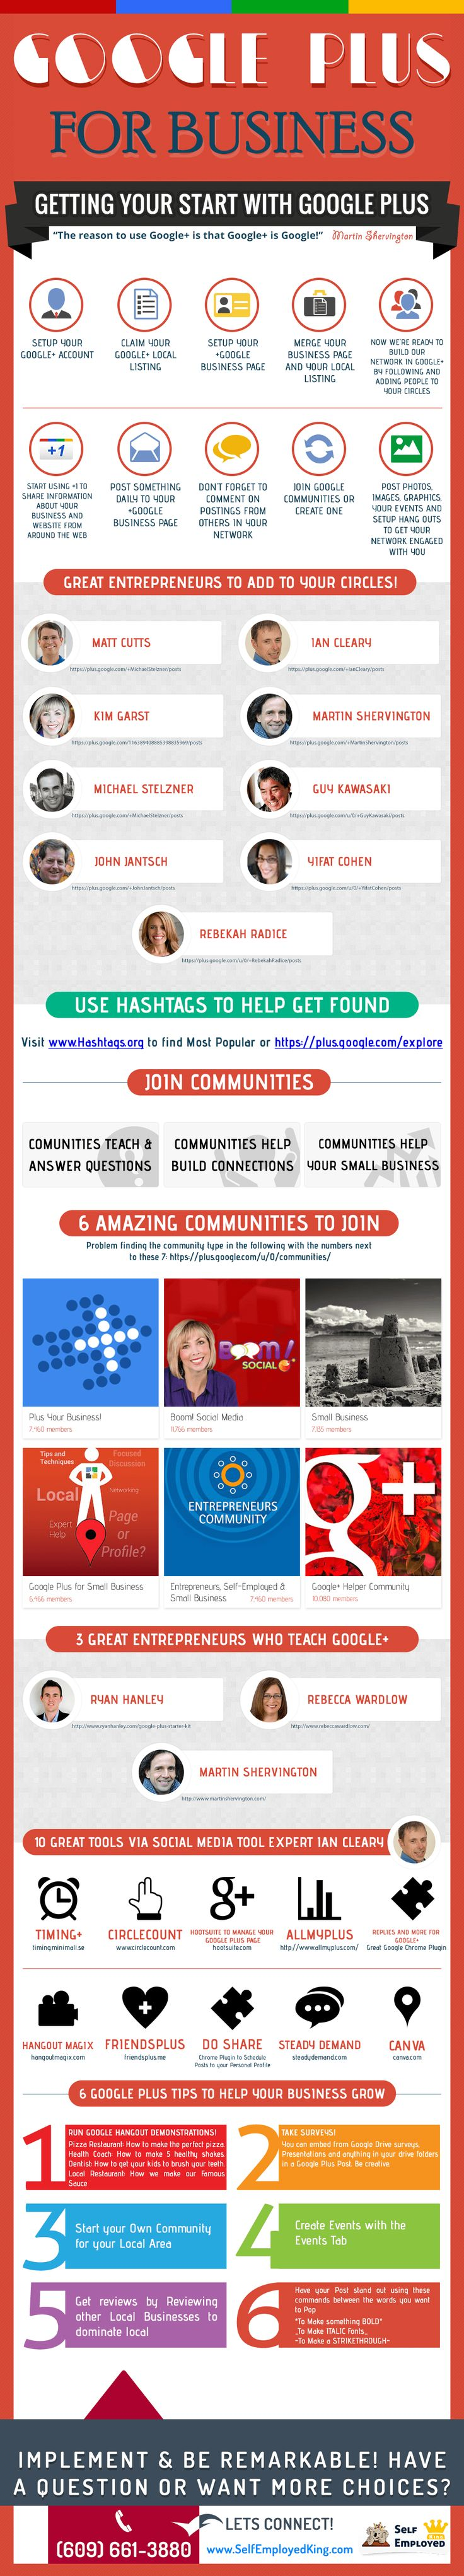 How to Use #GooglePlus for #Business https://plus.google.com/+SonjaSandholmPound/posts